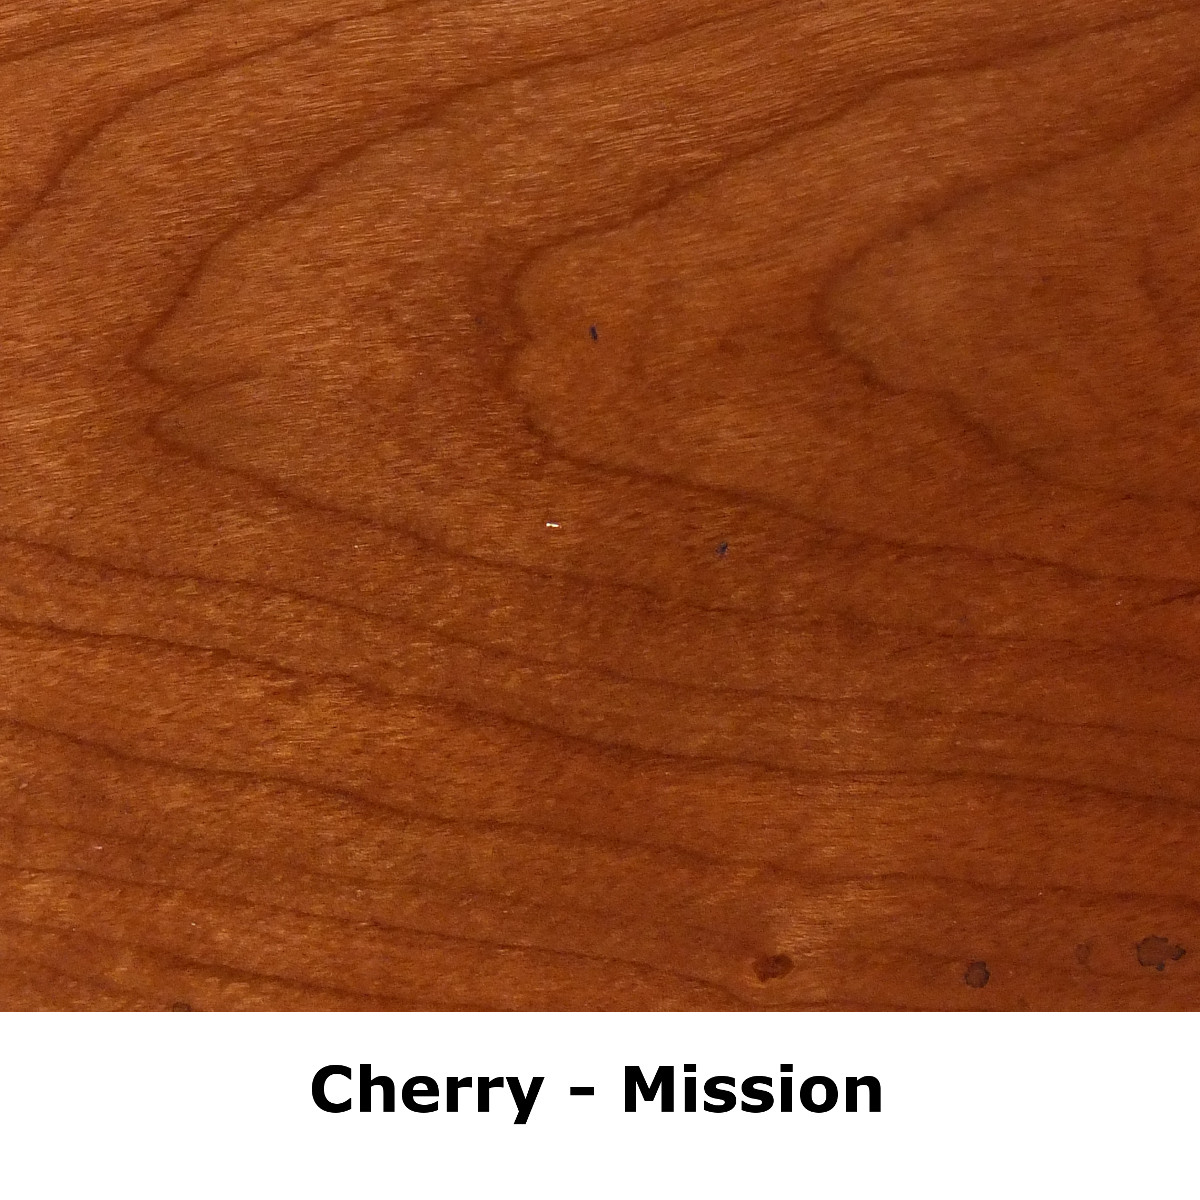 sq cherry mission.jpg